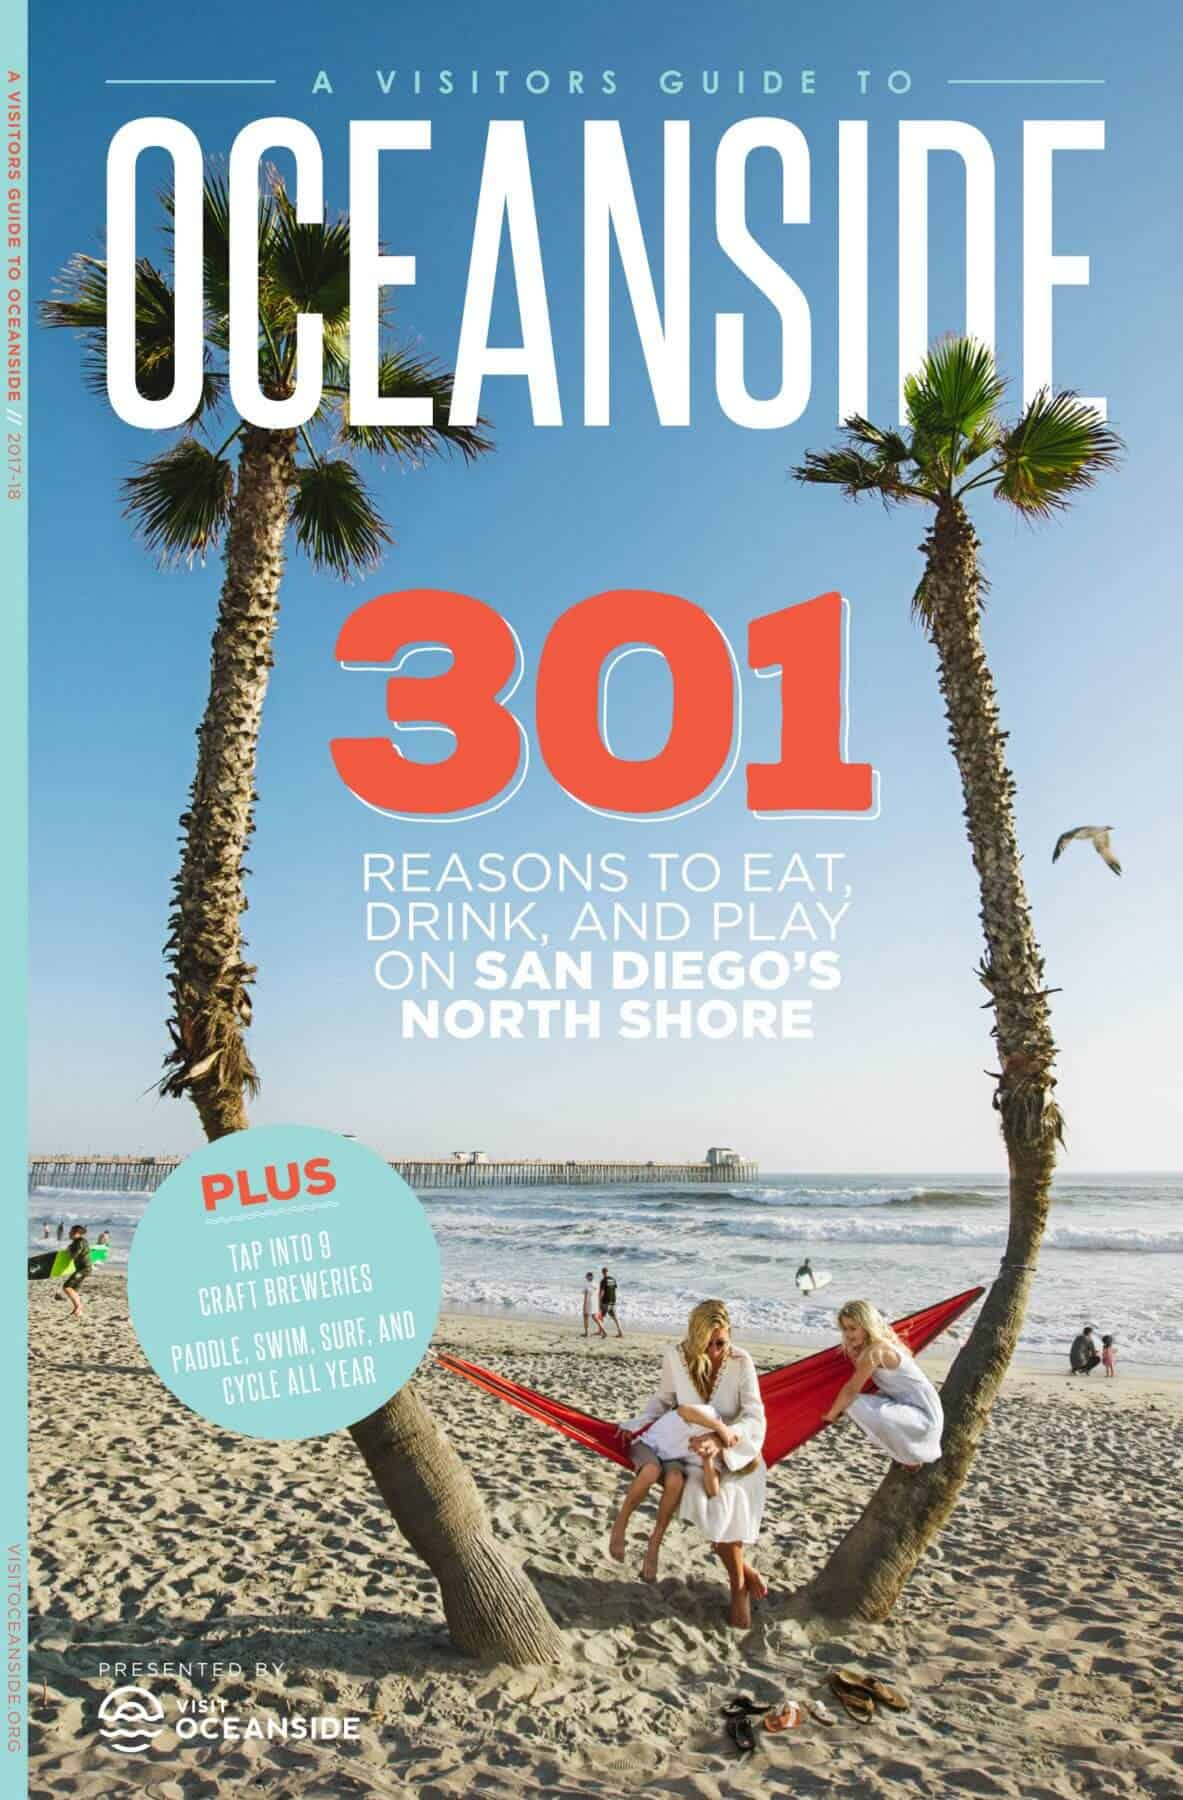 Visitors Guide Request Visit Oceanside